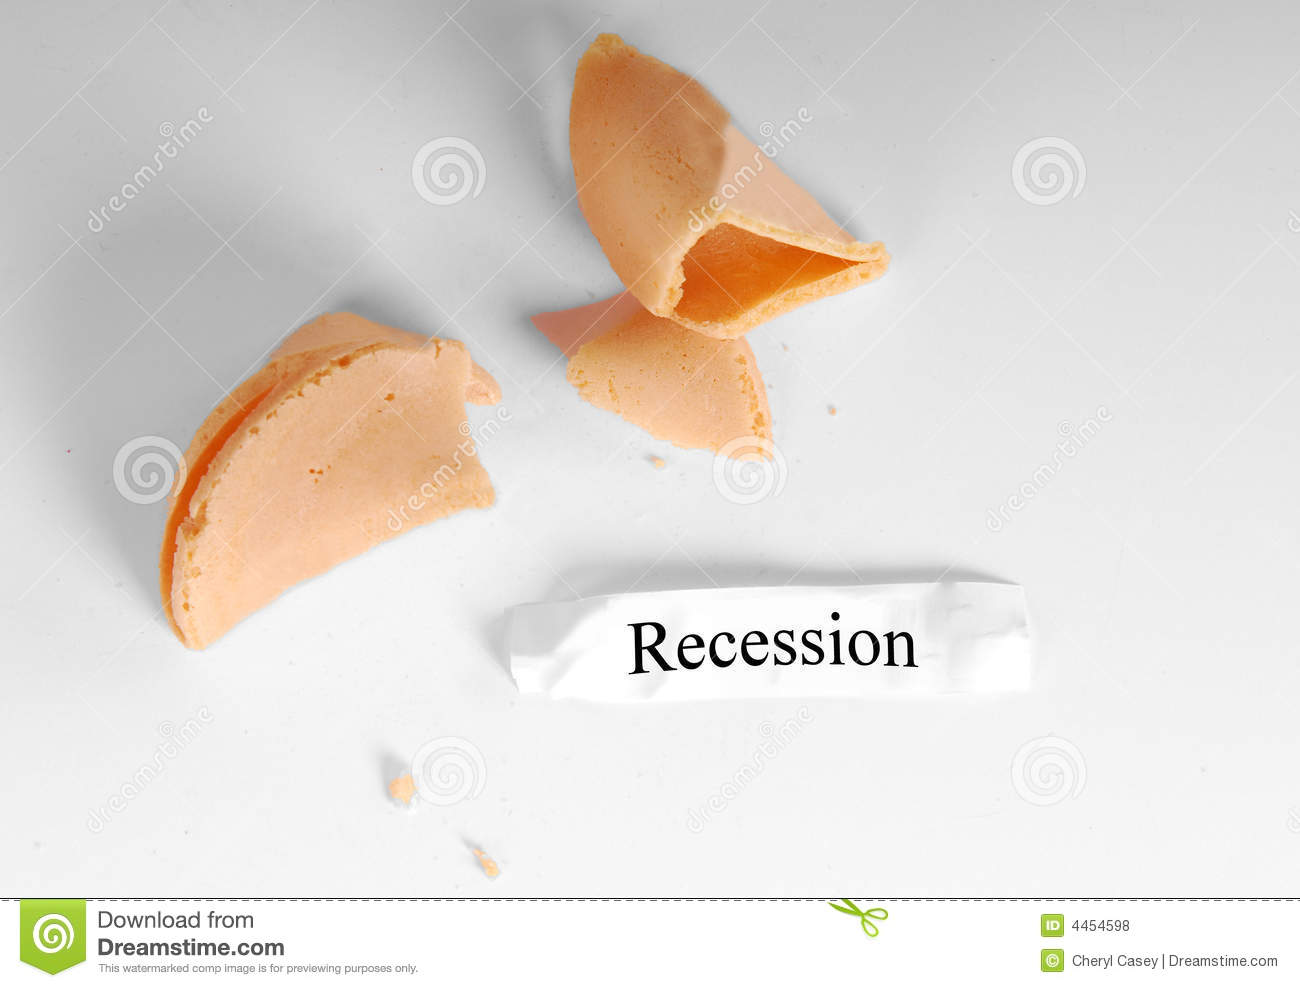 Recession in Fortune Cookie